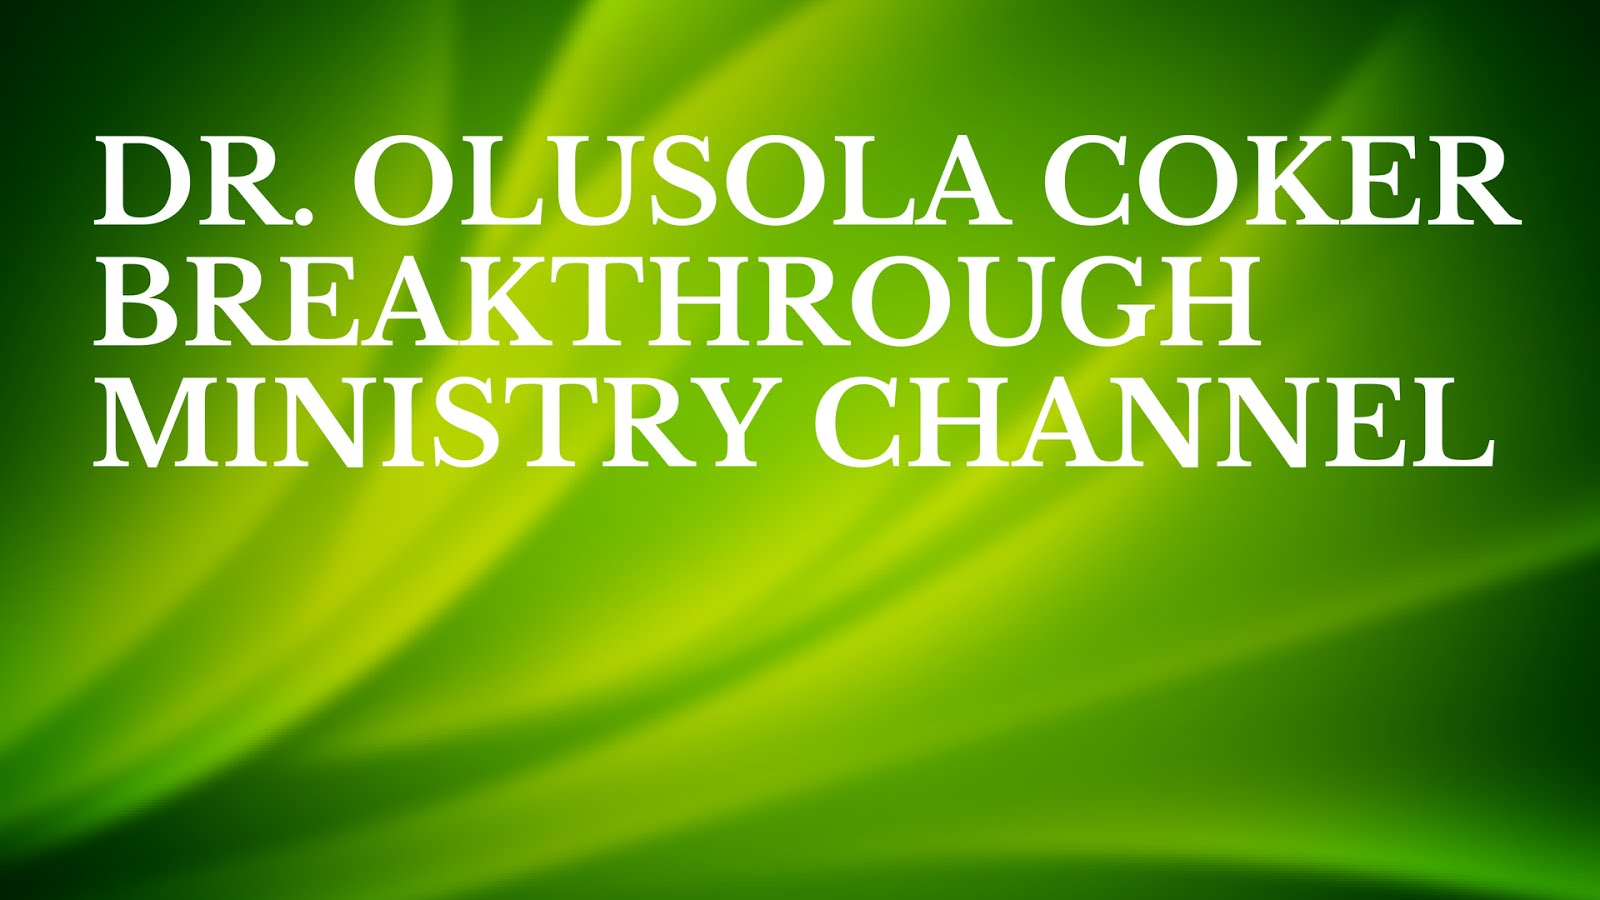 Dr. Olusola Coker Breakthrough Ministry Channel